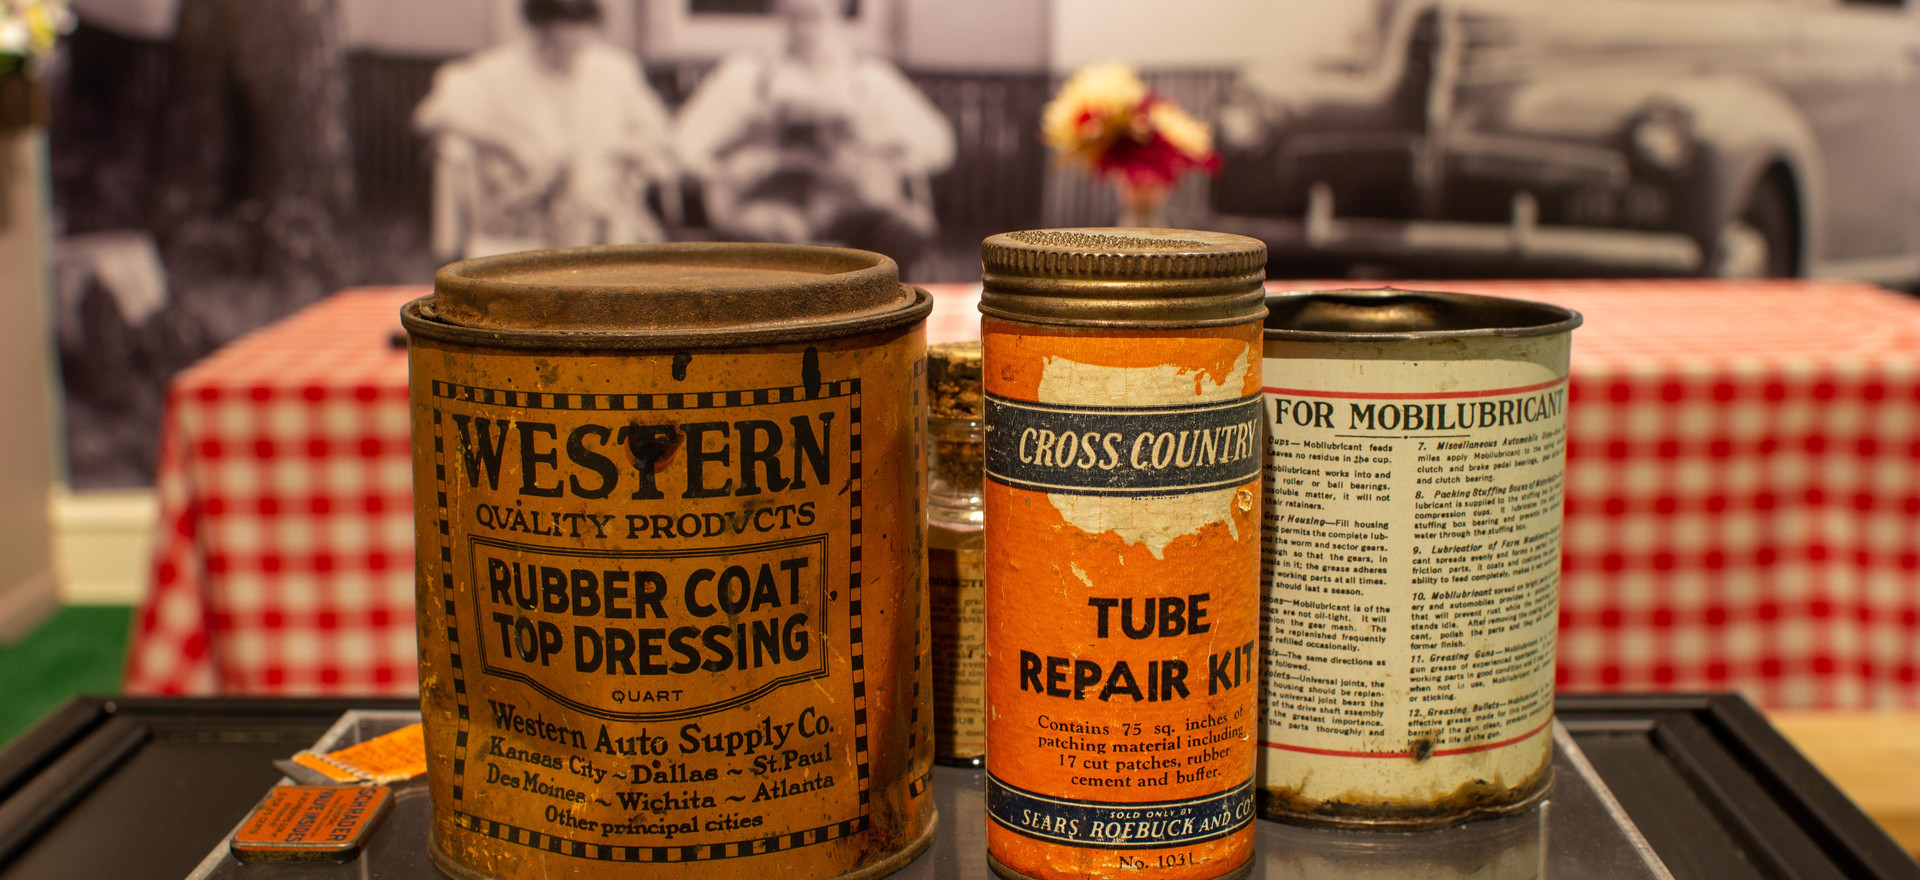 "TCHM Exhibit 19.jpg - photograph of several cans of automotive fluids. There are two in front that are visible in this photograph: 80.9.1 is a tin can for Rubber Coat Top Dressing, with mustard yellow paper and black print around it (approximately 5"" tall) and 80.9.62 is a tin can with a screw cap lid, slightly taller and thinner than 80.9.1 with orange paper and black writing. The contents of 80.9.1 are pieces of a tire tube repair kit."